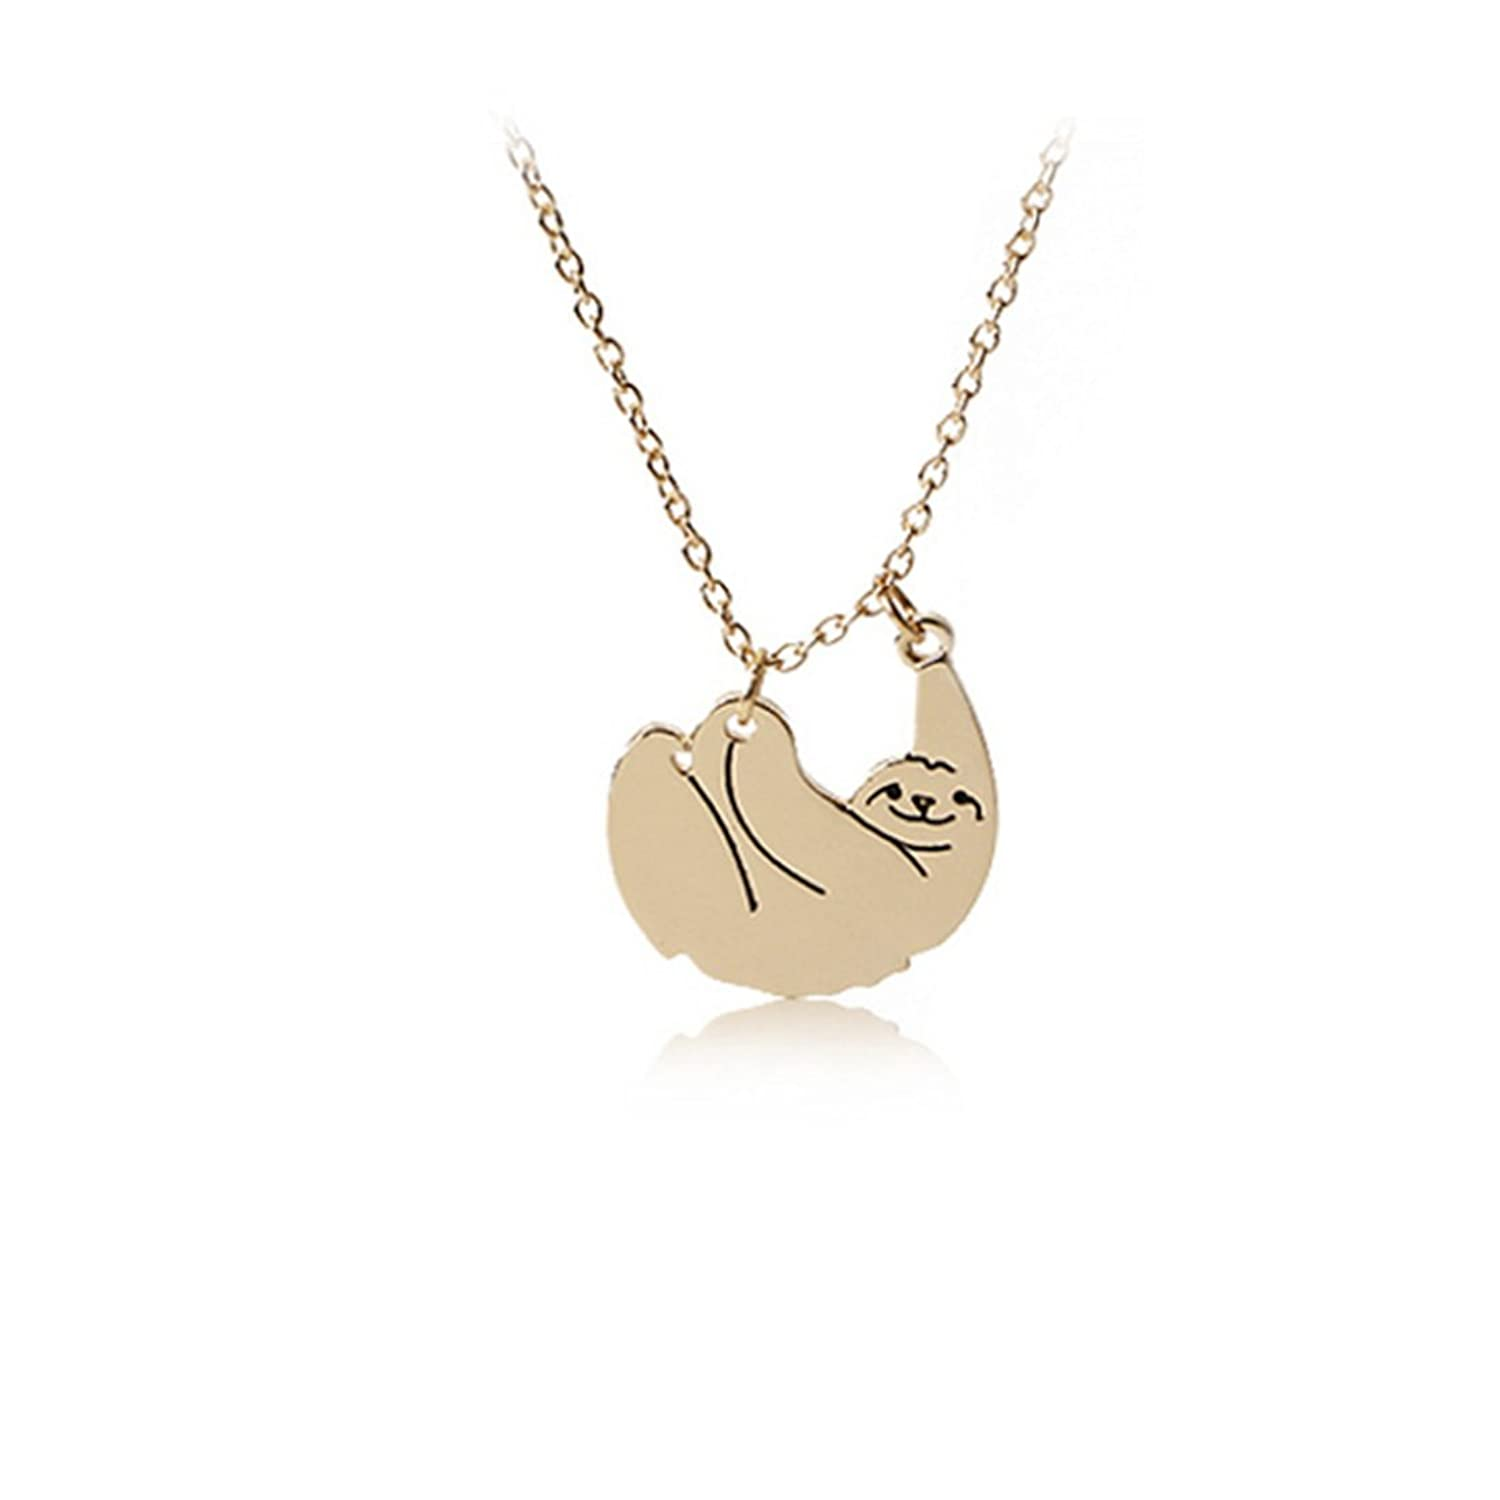 sloth animal ebay itm mens fashion necklace womens jewelry hanging gold pendant s silver